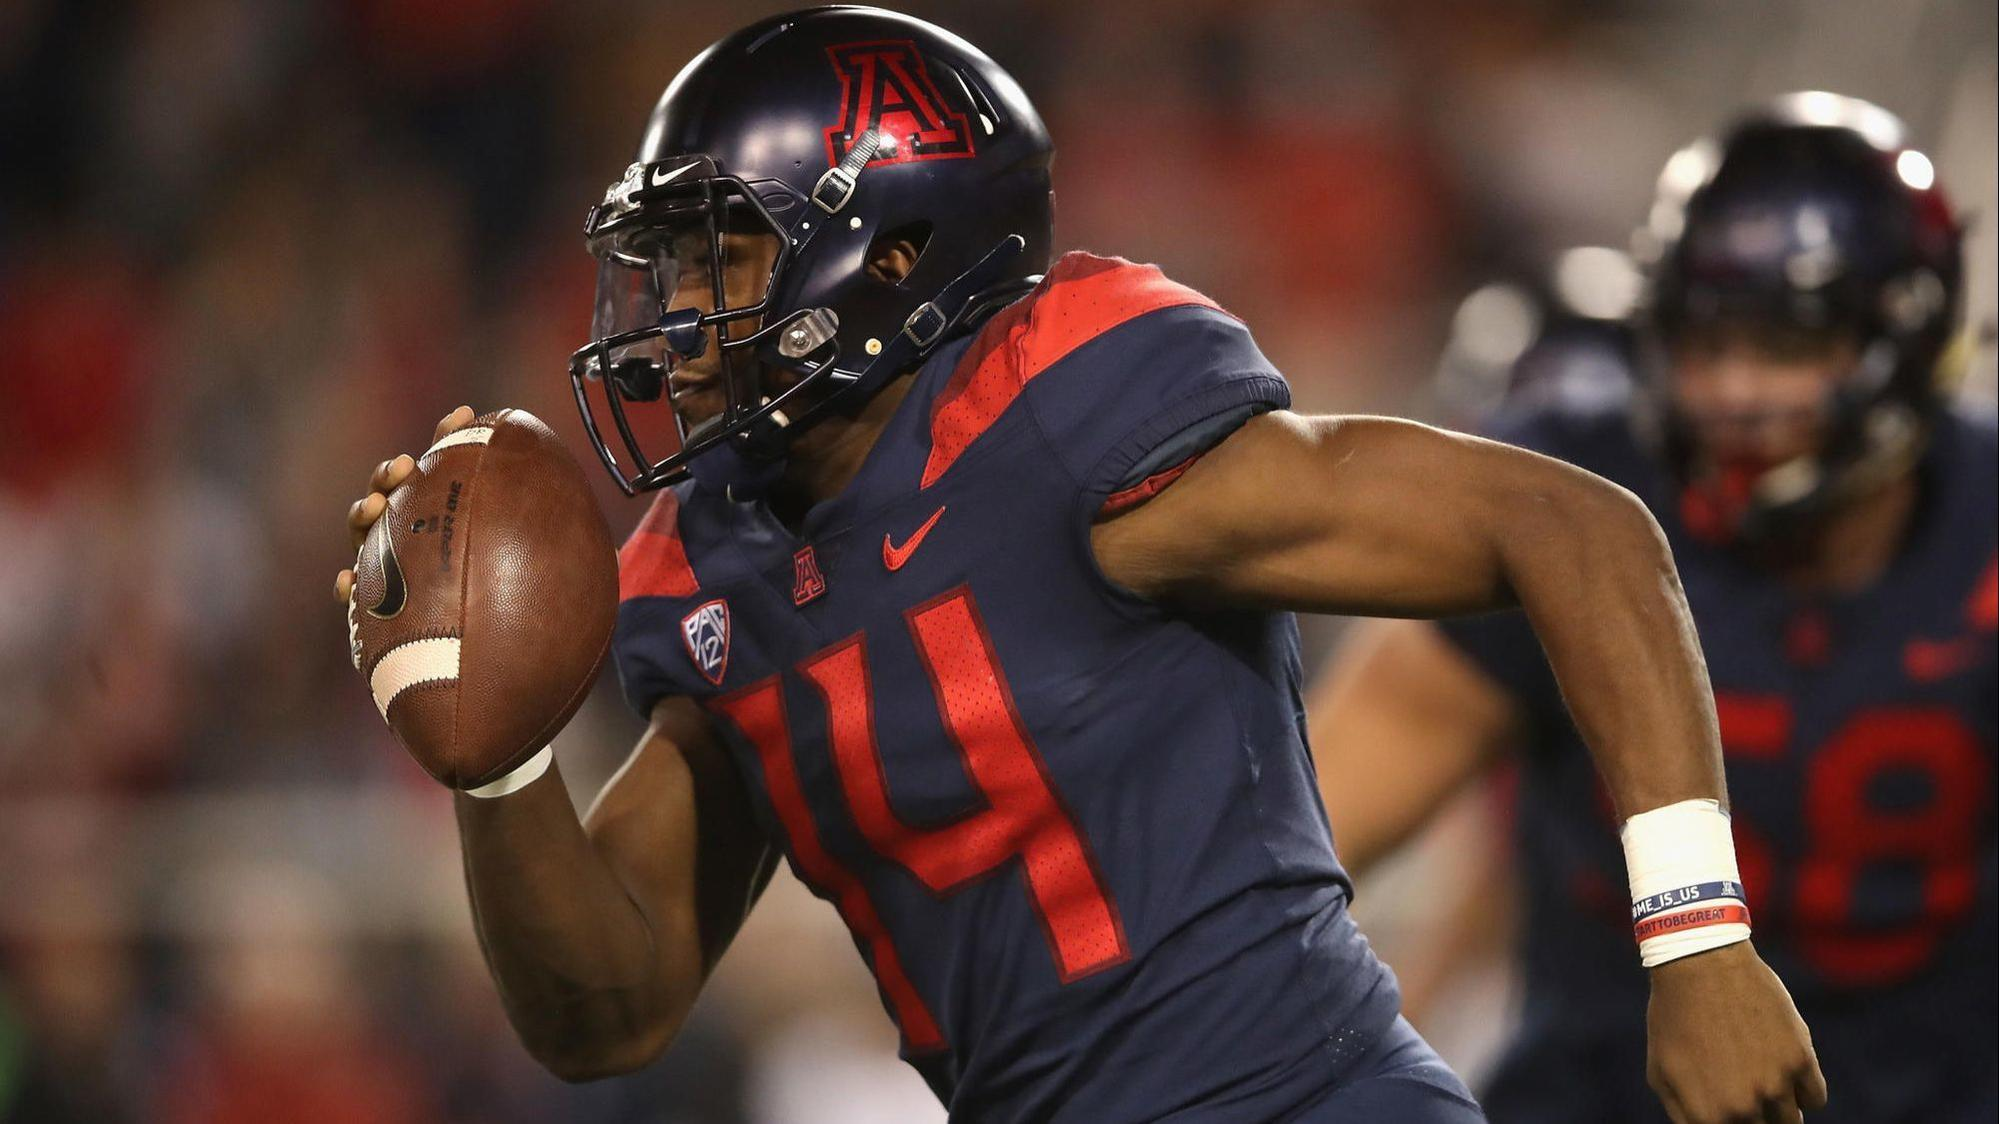 Pac-12 football: Tate's five touchdown passes lead Arizona to 42-34 win over Colorado